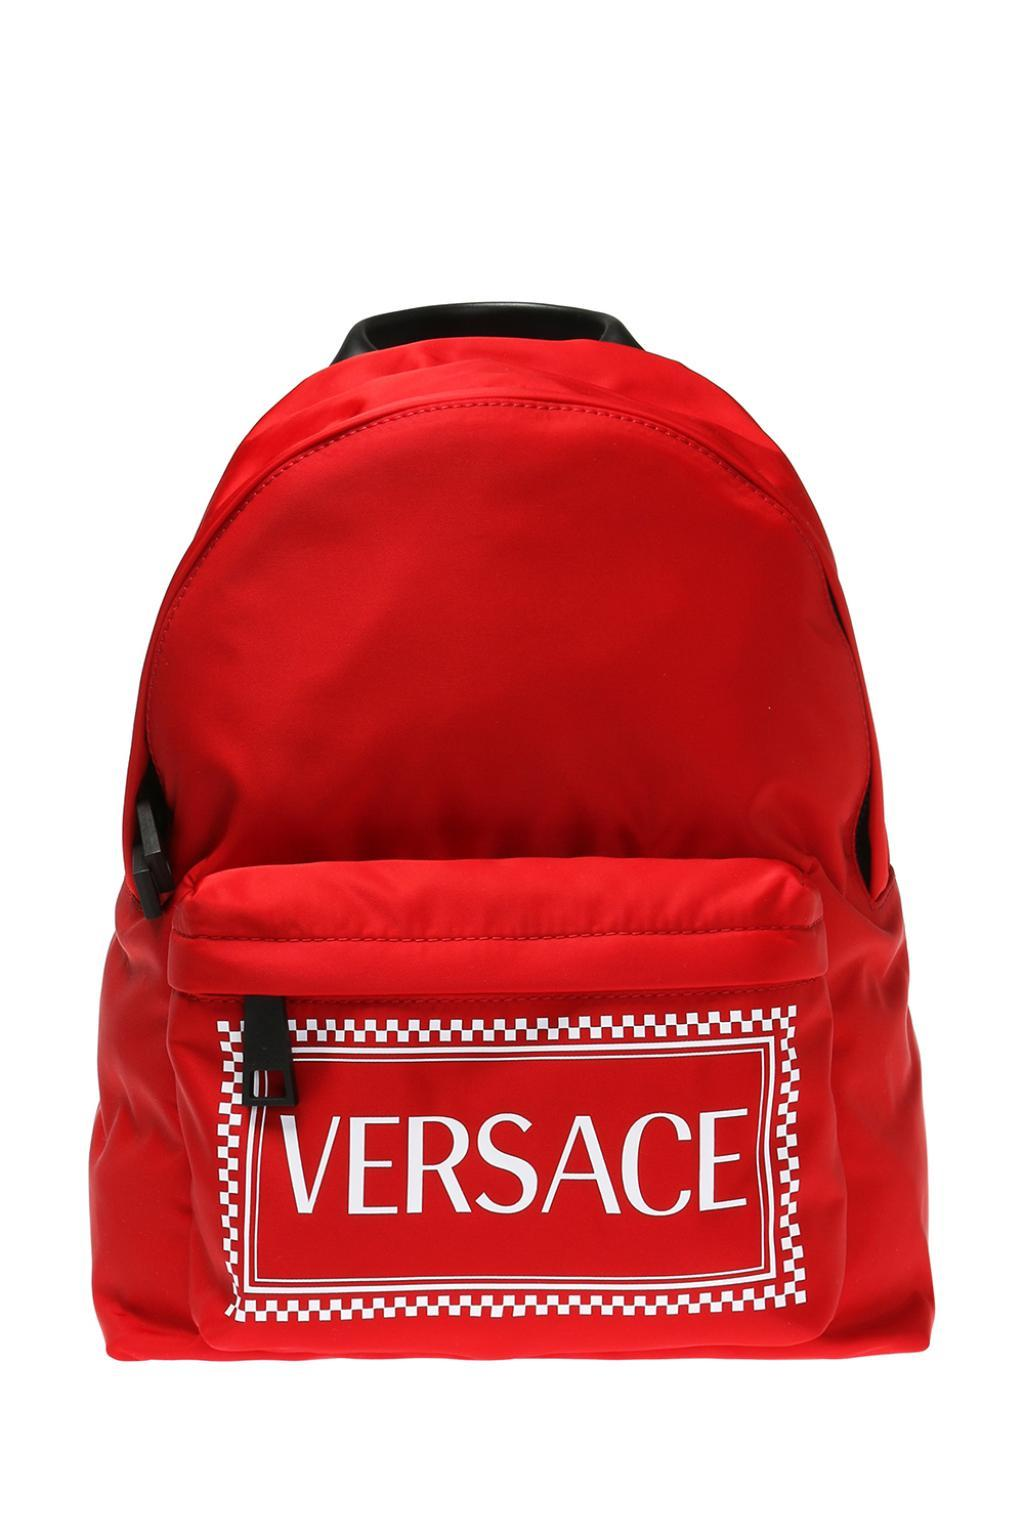 7bef9a7474 Versace - Red Branded Backpack - Lyst. View fullscreen